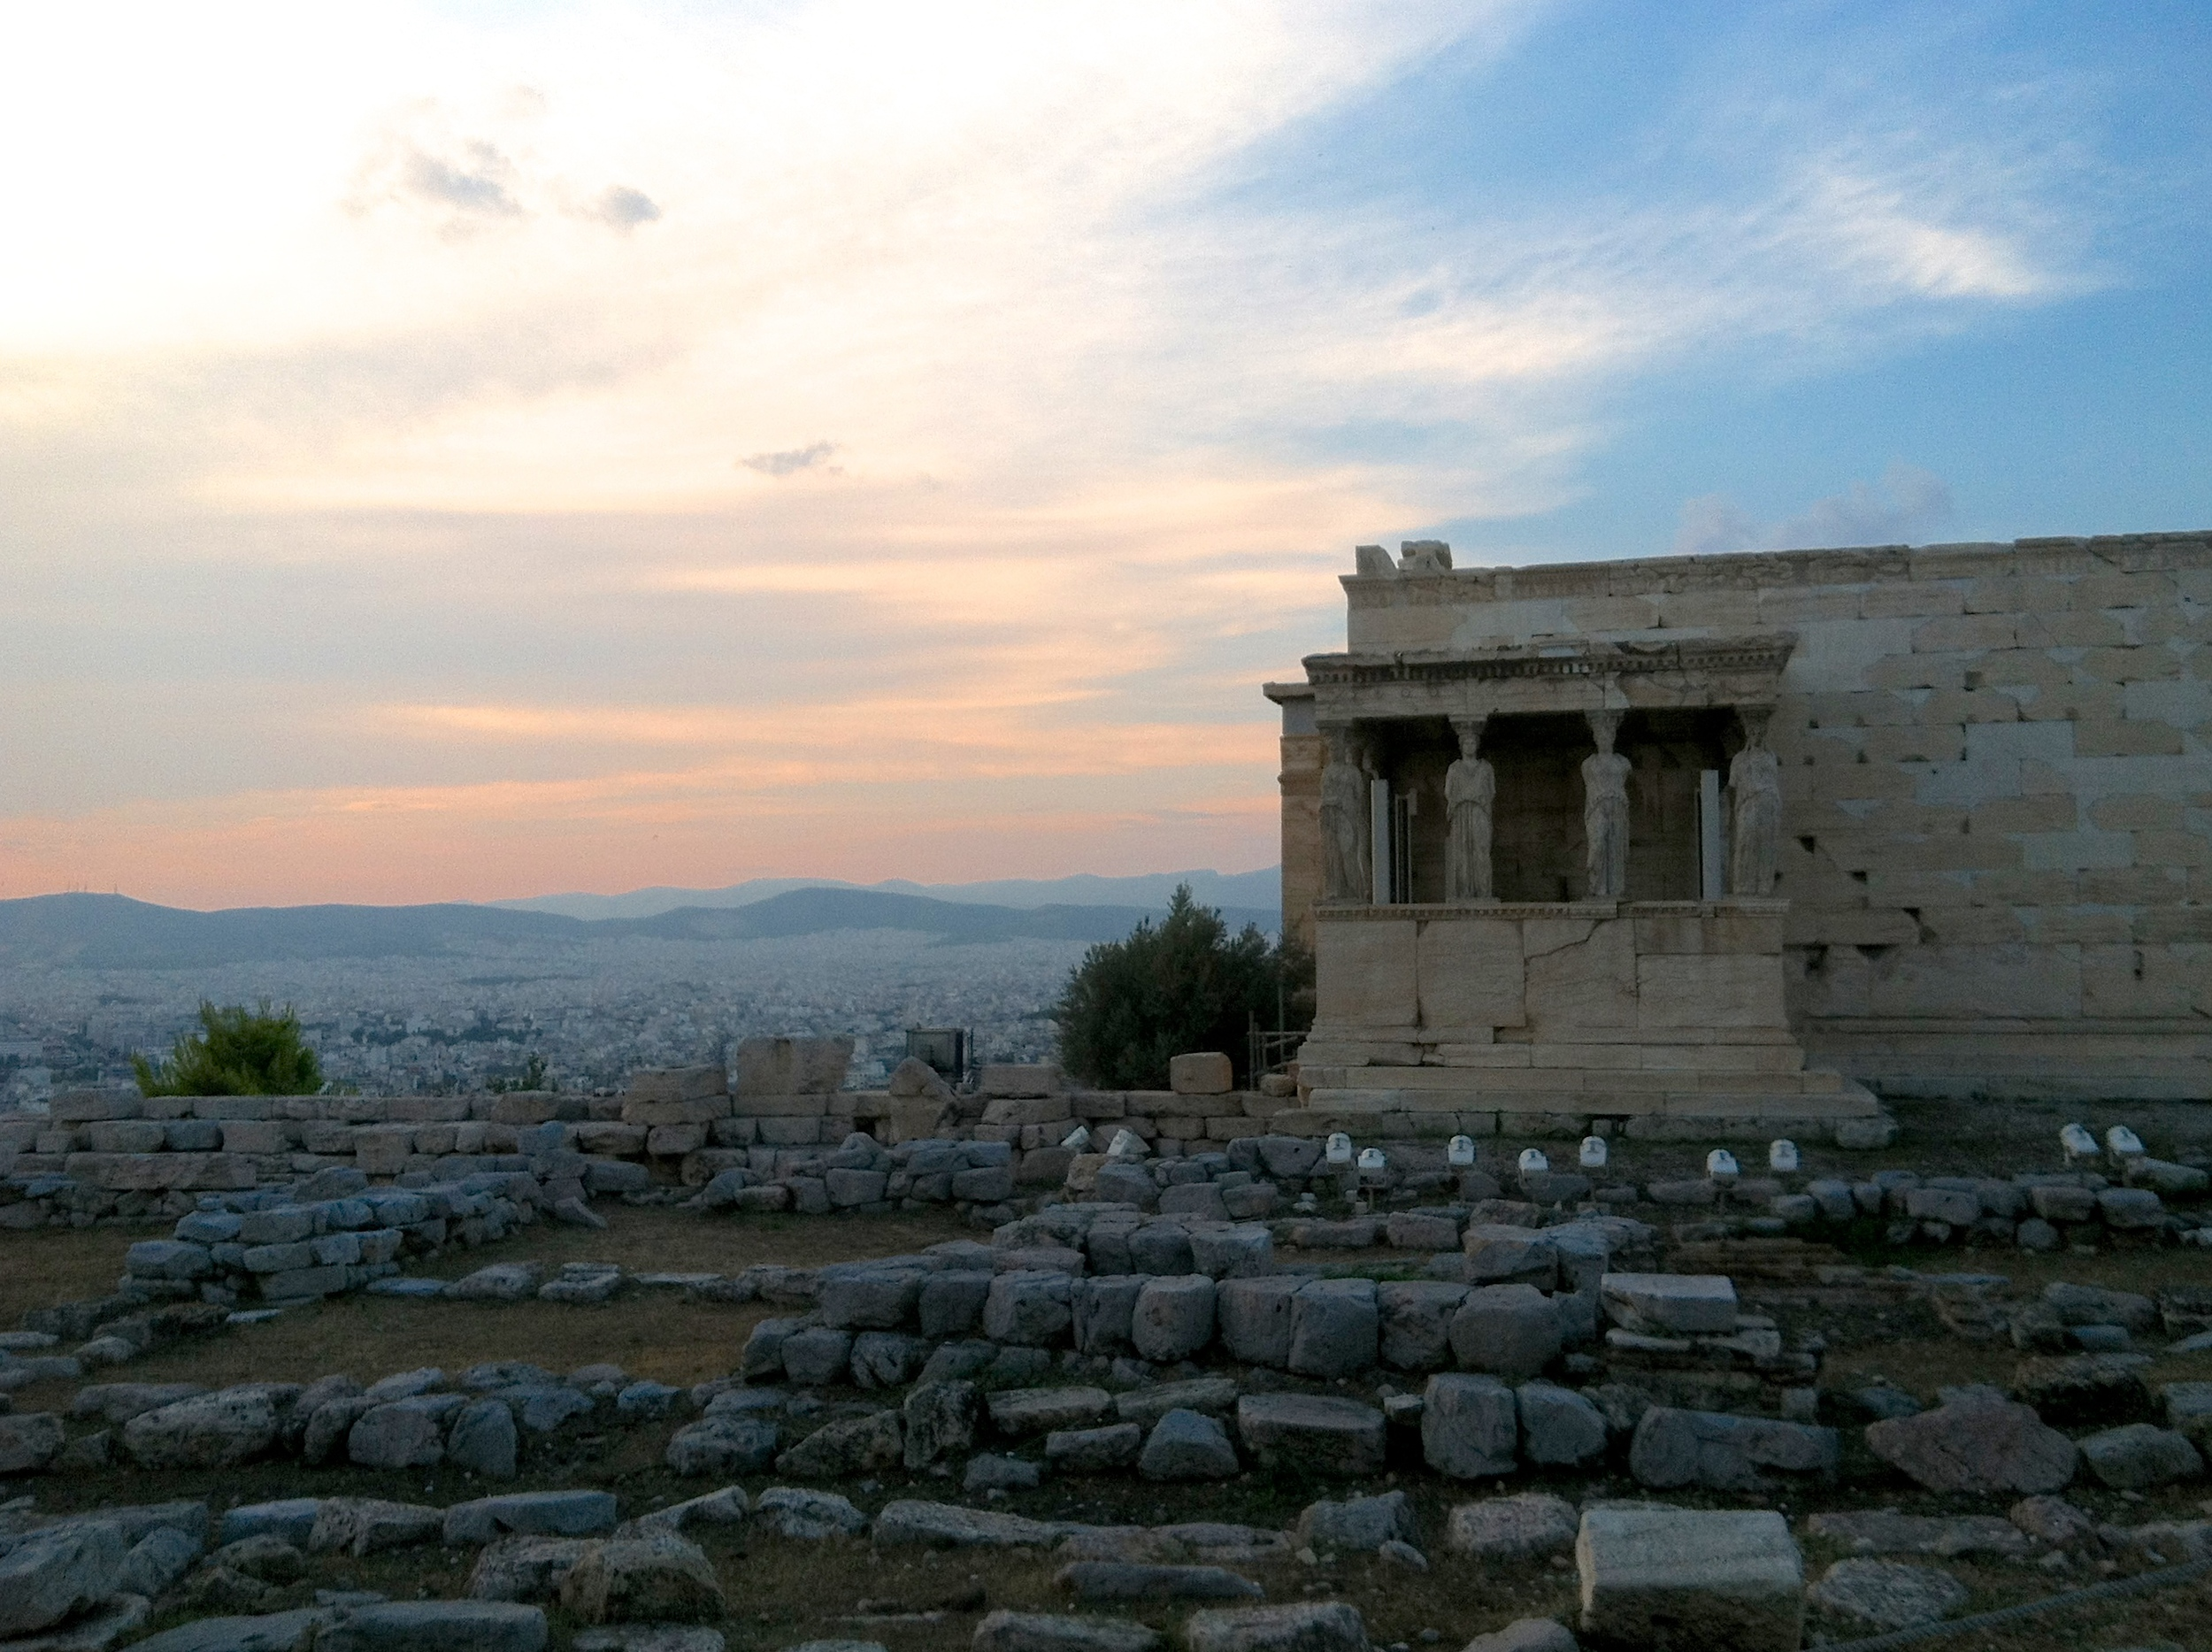 The Erechtheion, The Acropolis of Athens